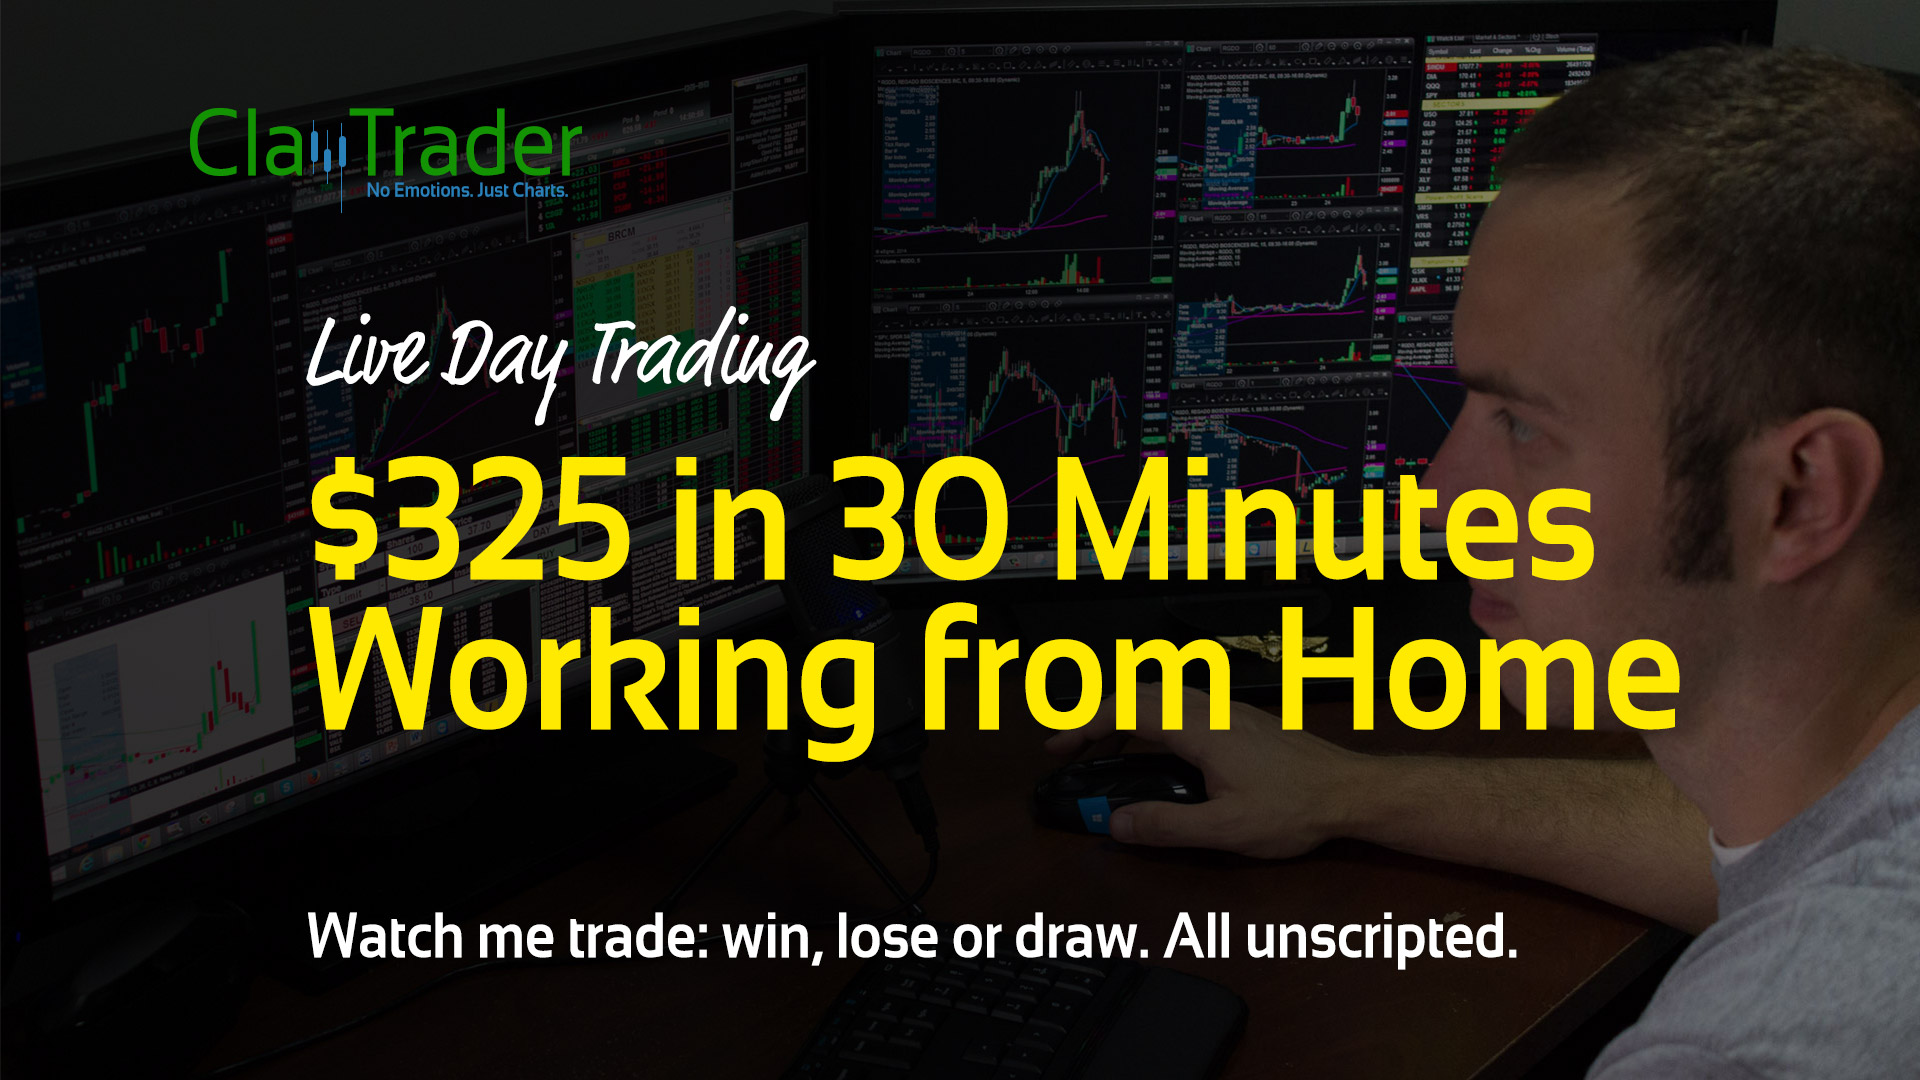 $325 in 30 Minutes Working from Home